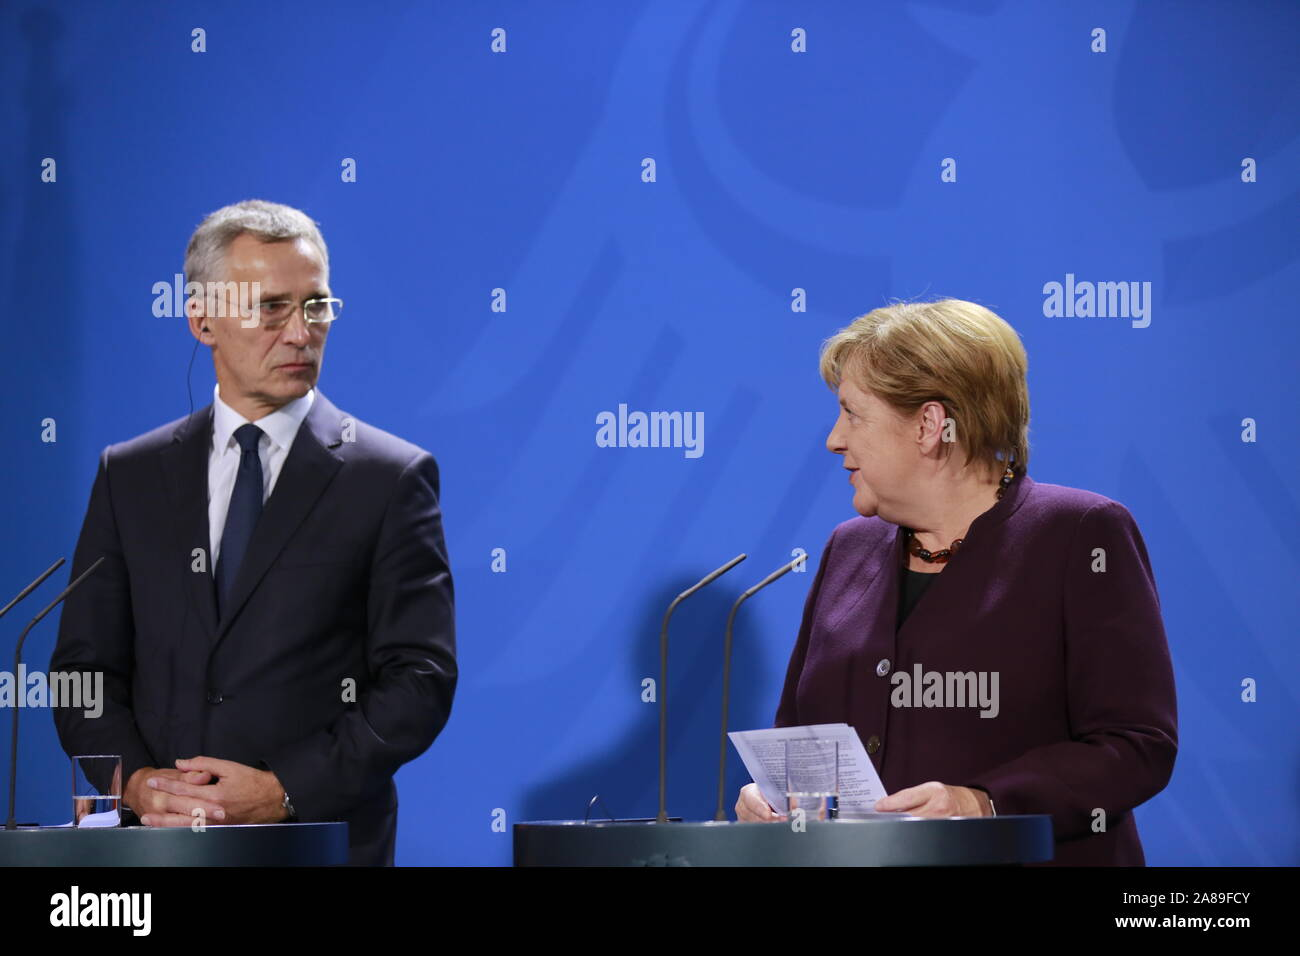 11/07/2019, Berlin, Germany, Chancellor Angela Merkel and Jens Stoltenberg in the Chancellery. German Chancellor Angela Merkel receives NATO Secretary General Jens Stoltenberg on 7 November for a working visit to the Federal Chancellery. In addition to exchanging views on current issues, the exchange of views will include, in particular, the forthcoming NATO Heads of Government meeting in London on 3 and 4 December 2019, which celebrates the 70th anniversary of the Alliance. Stock Photo